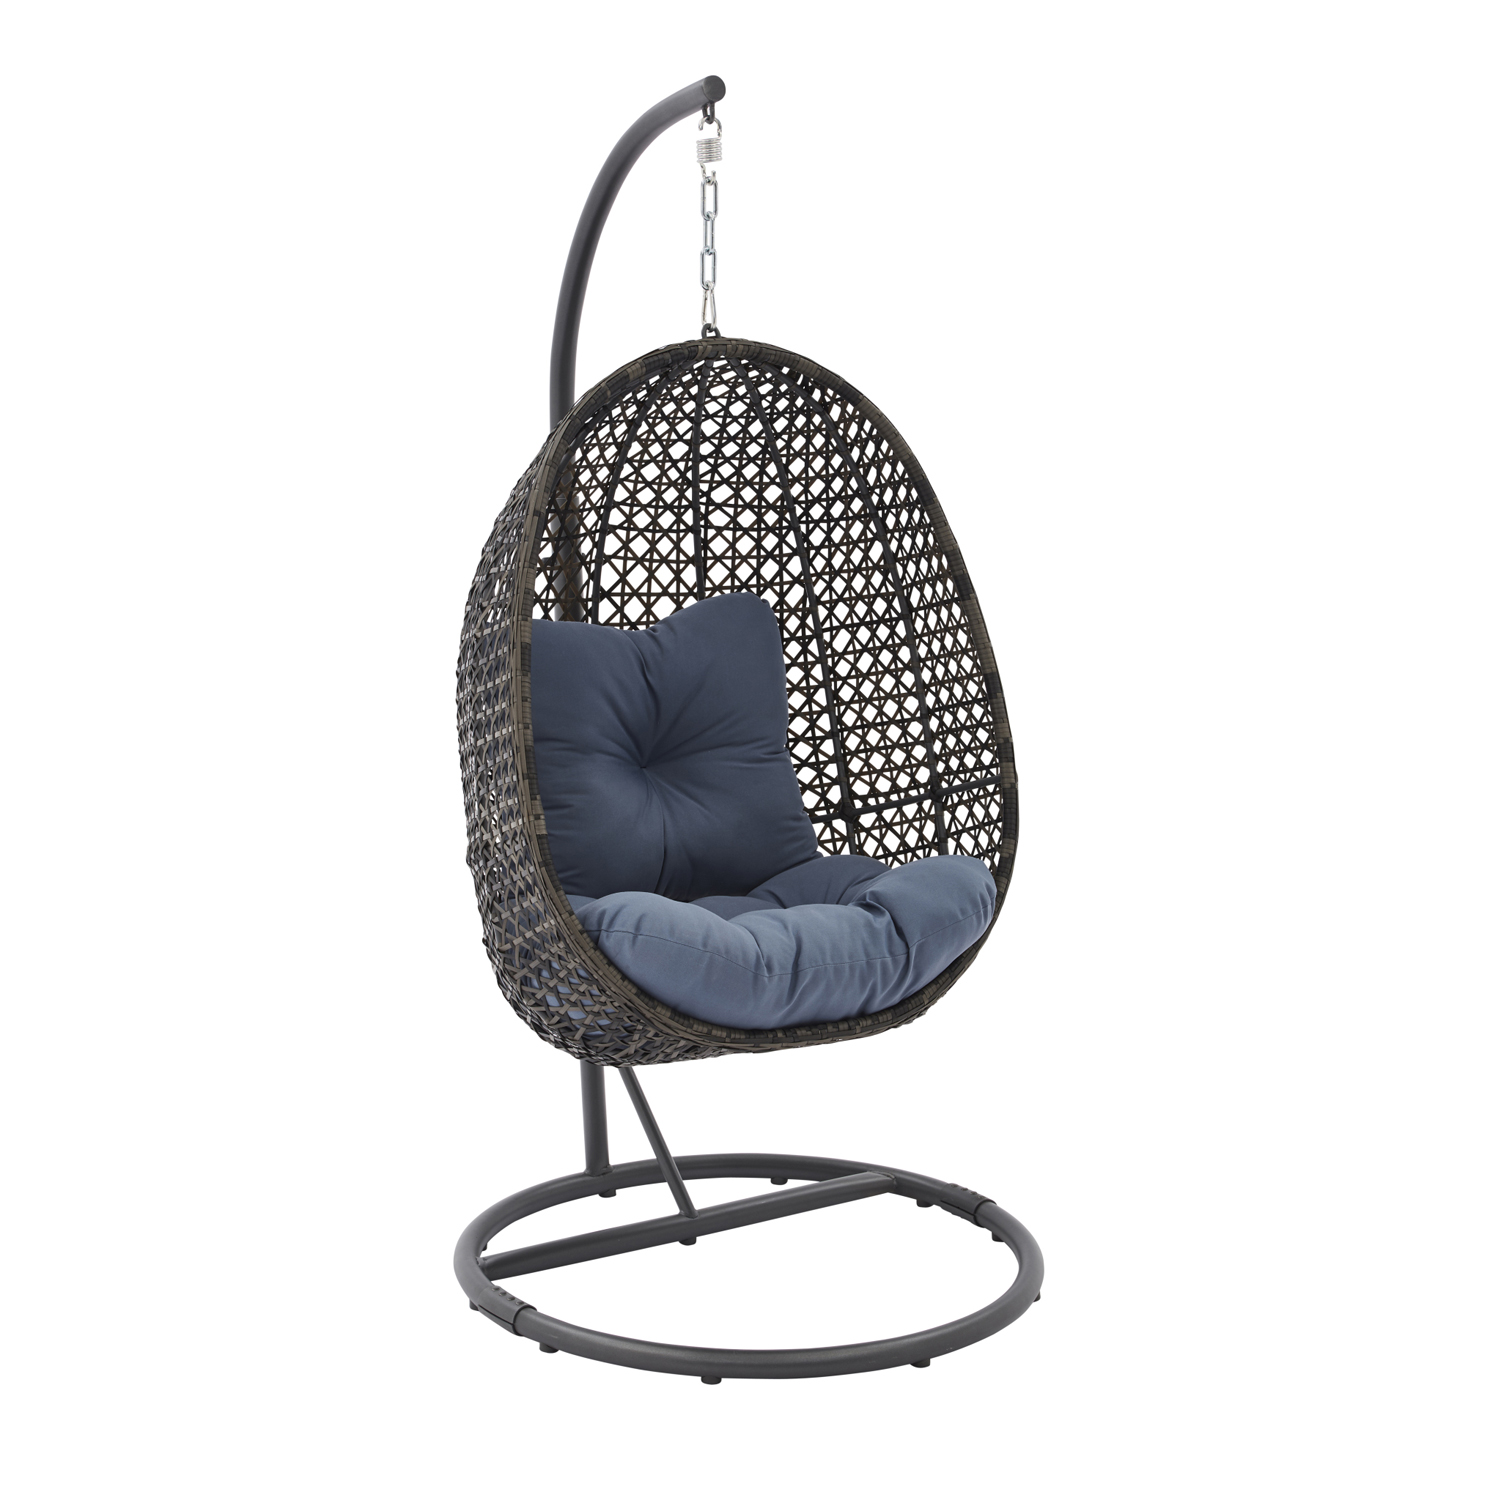 Lantis Outdoor Wicker Hanging Egg Chair With Stand Handwoven Olefin Seat Swing